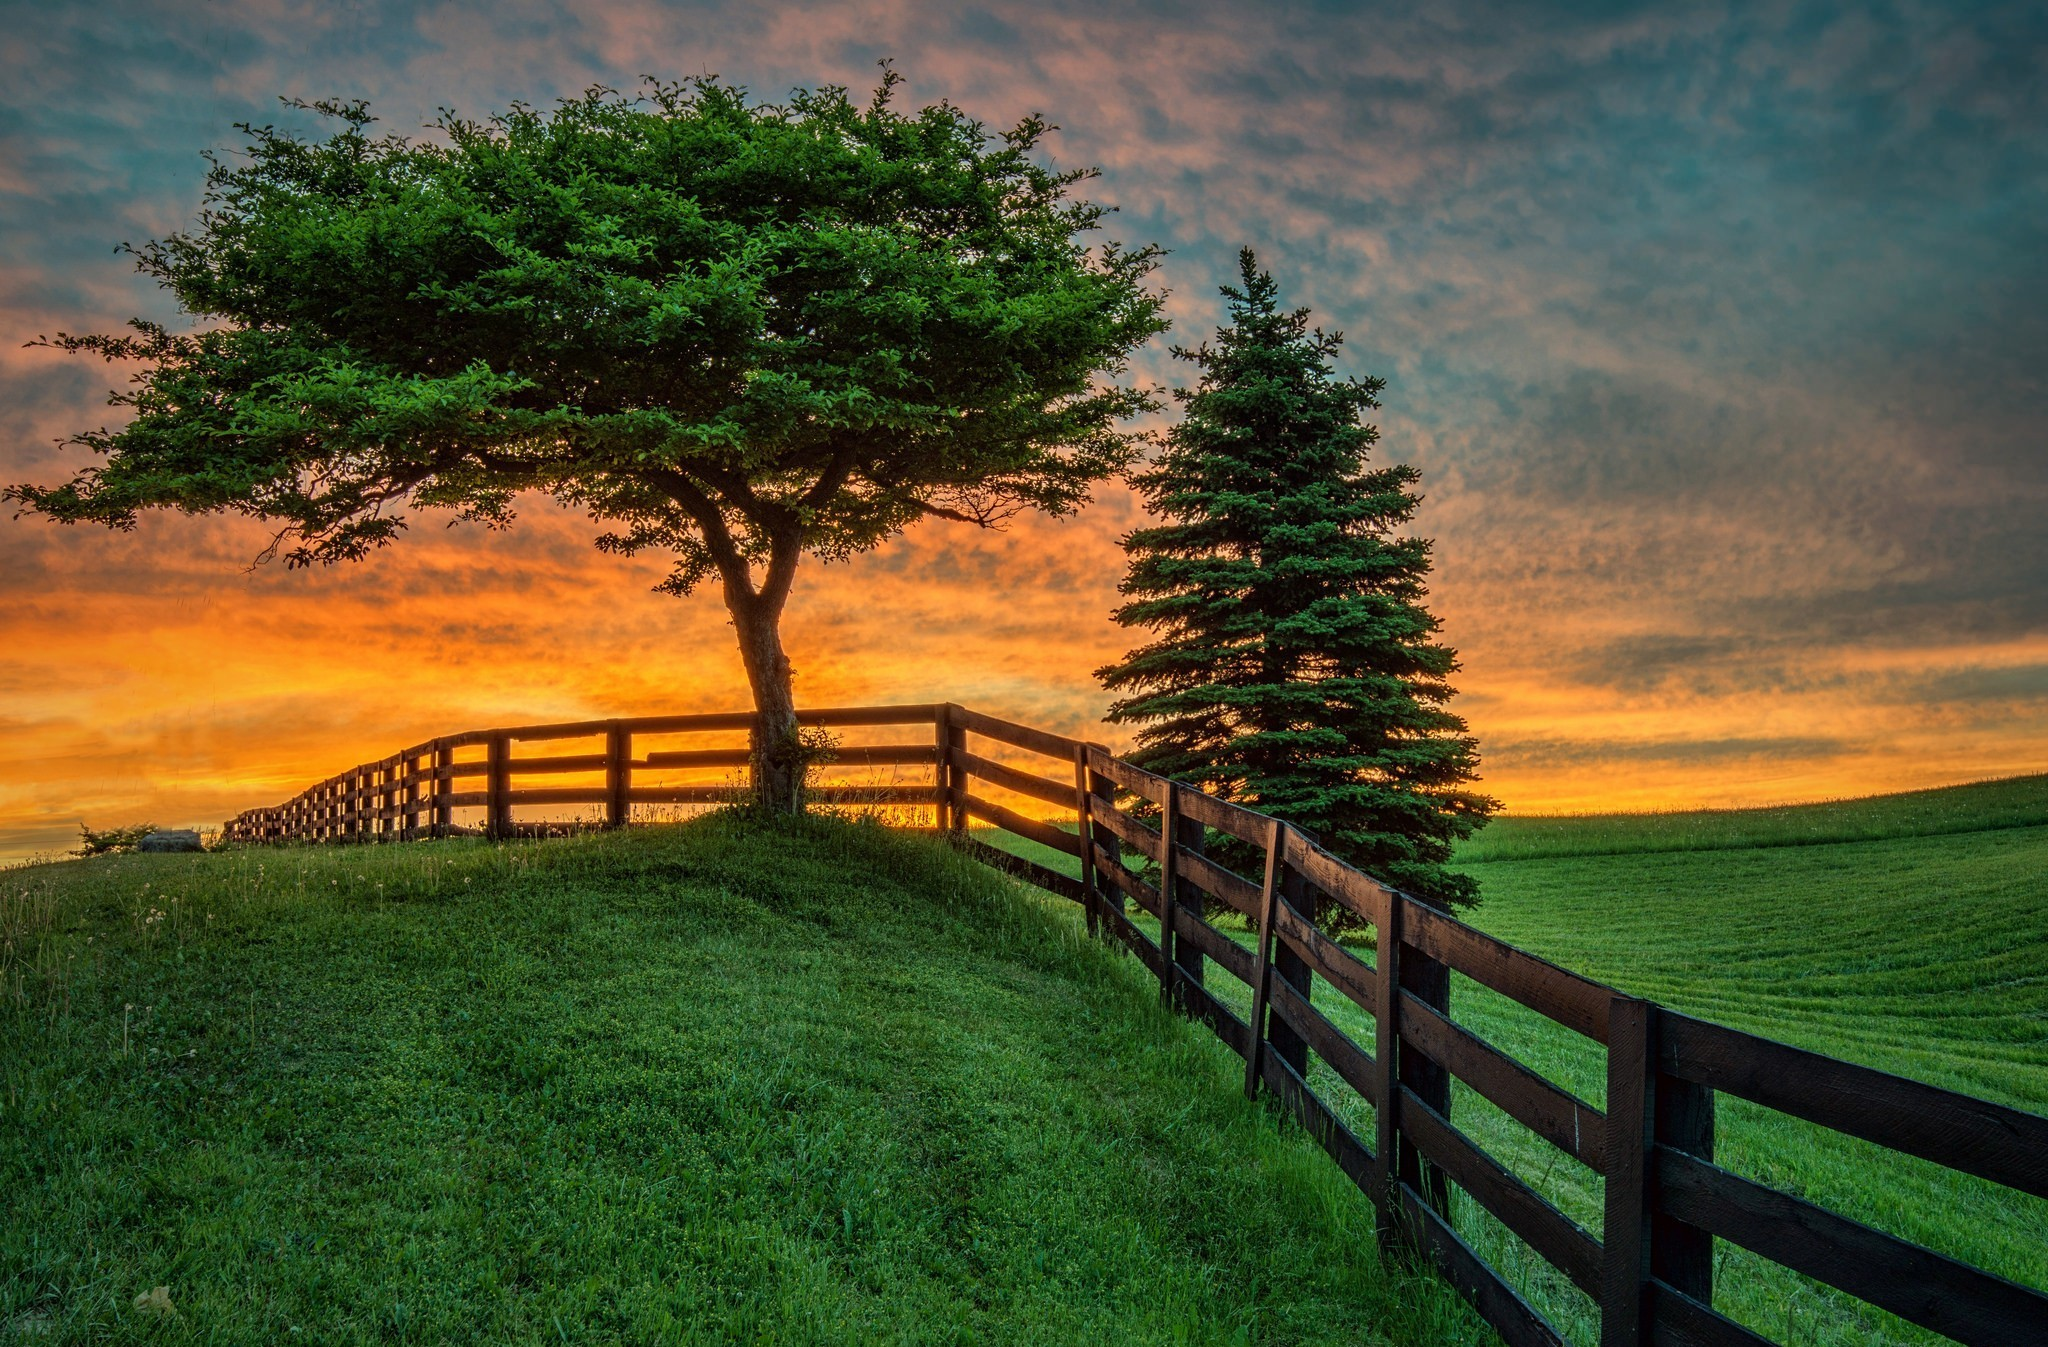 Trees And Fence At Sunset